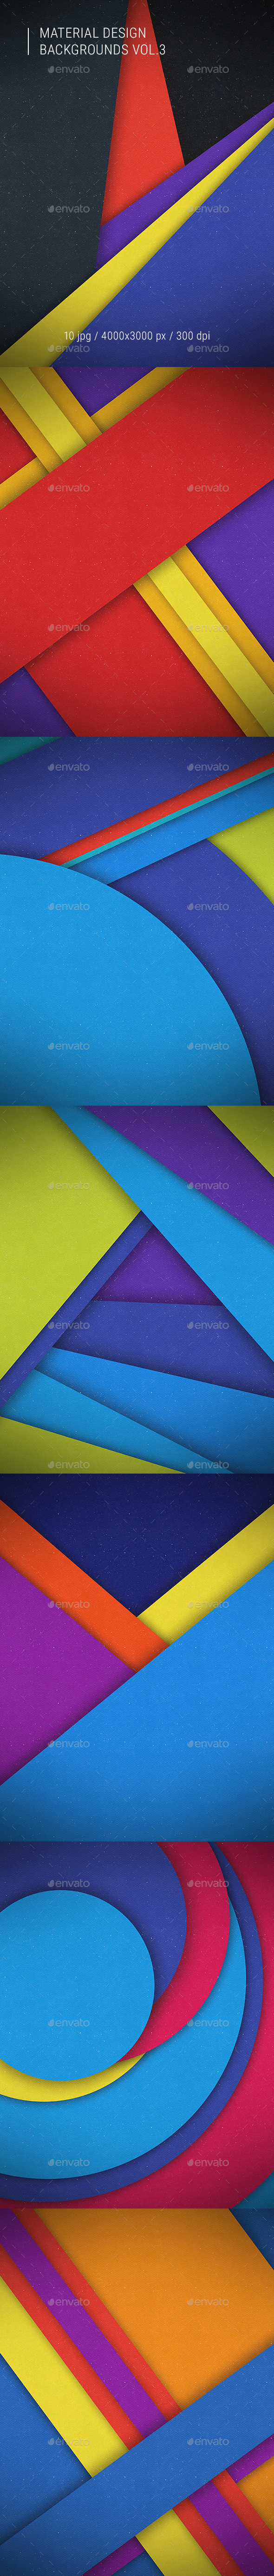 Material Design Backgrounds Vol.3 - Abstract Backgrounds